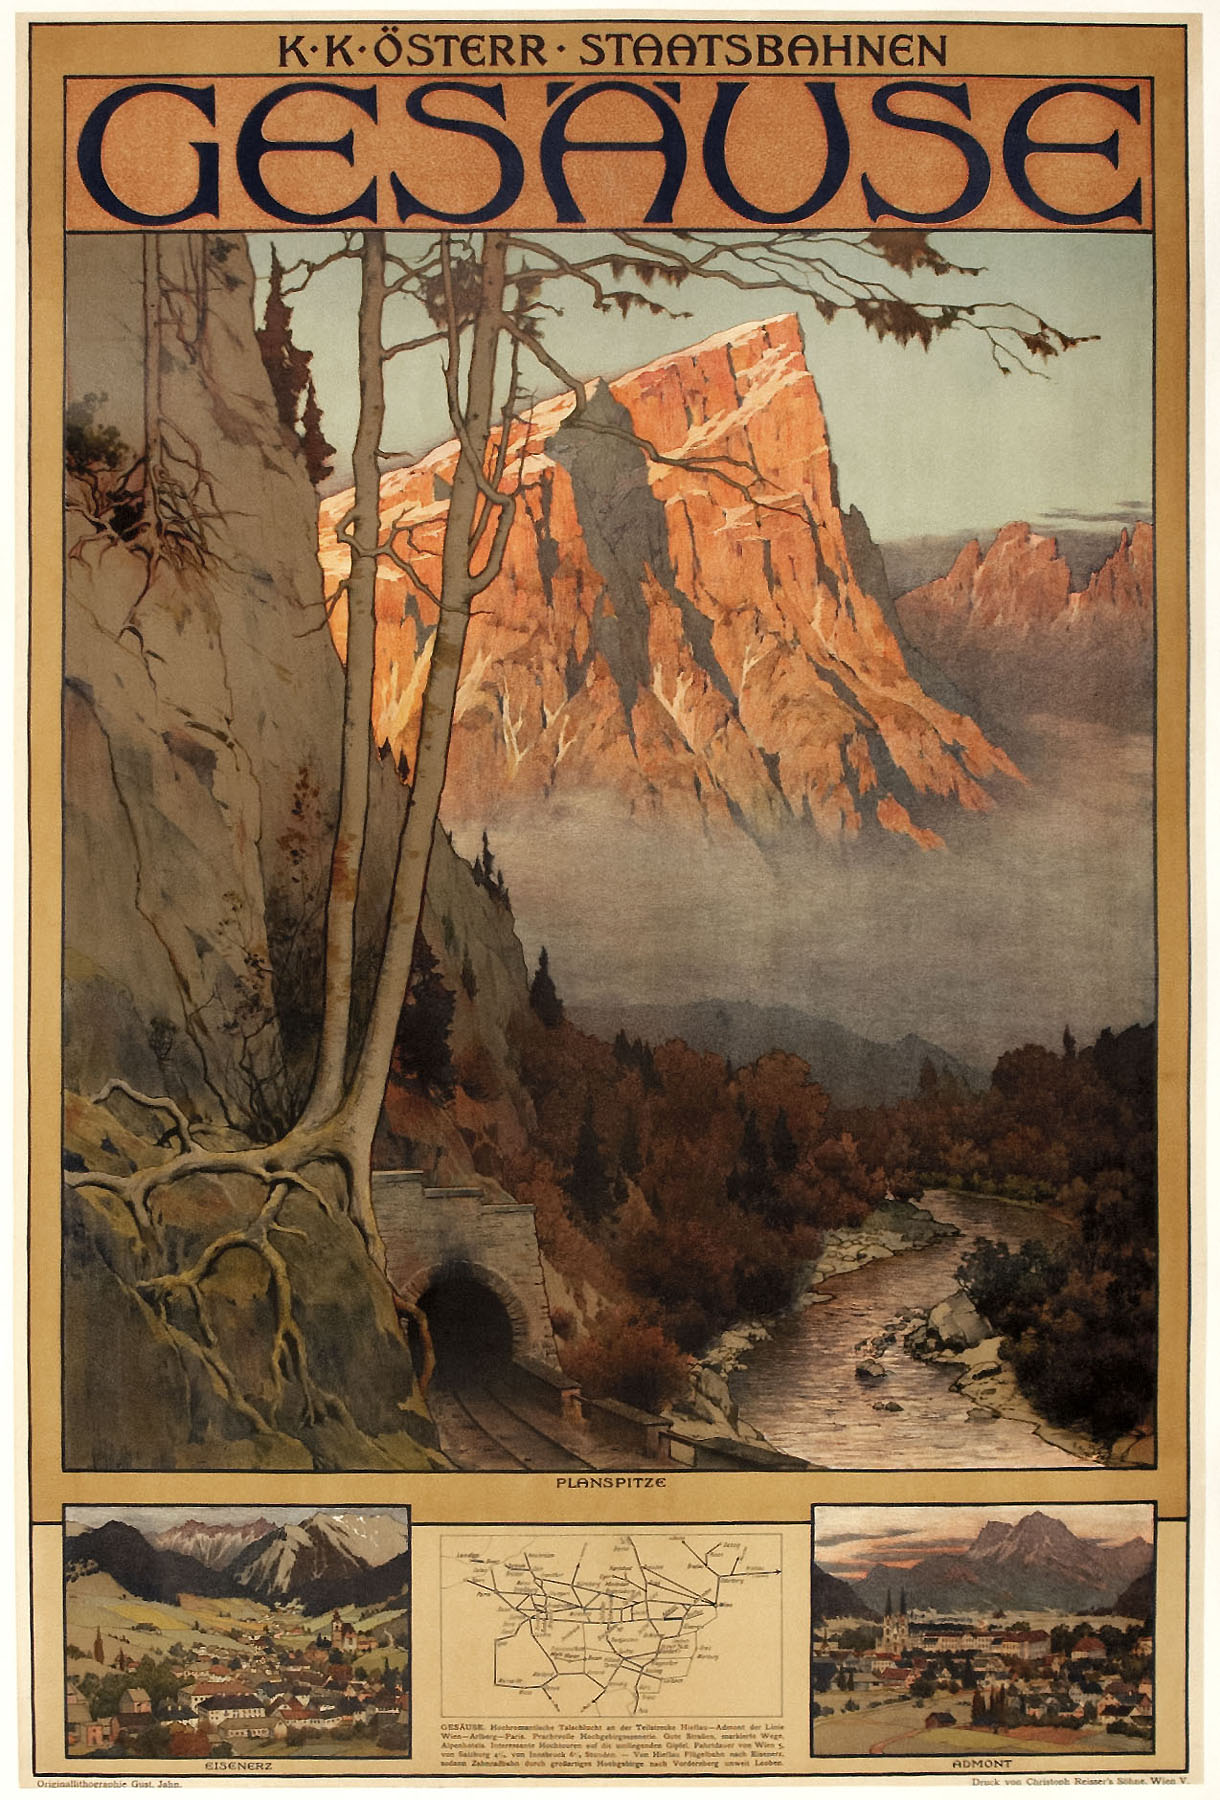 1905 Gesause, in the Austrian Alps, is a climber's